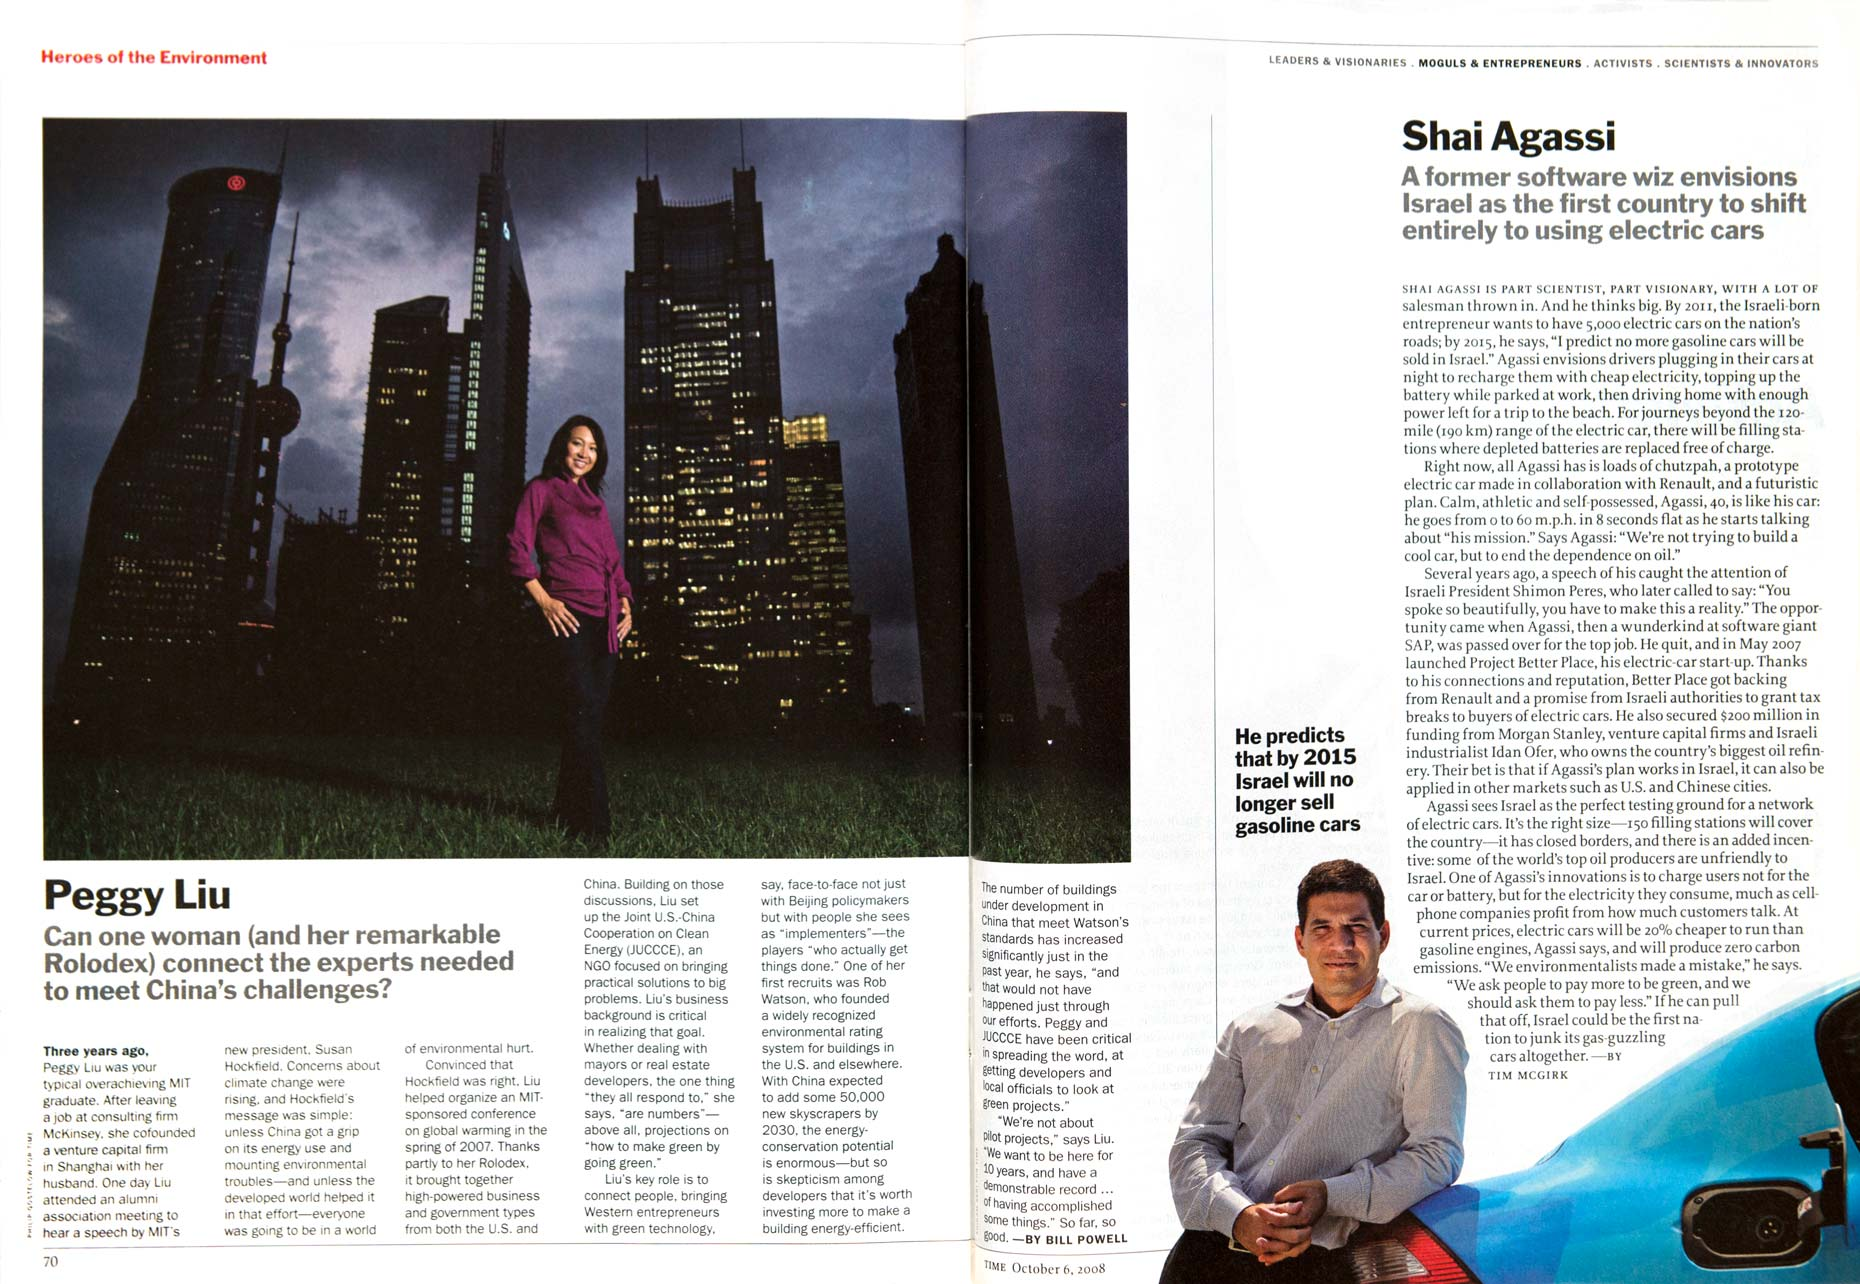 TIME magazine 09 October 2008 - Peggy Liu - environmental hero